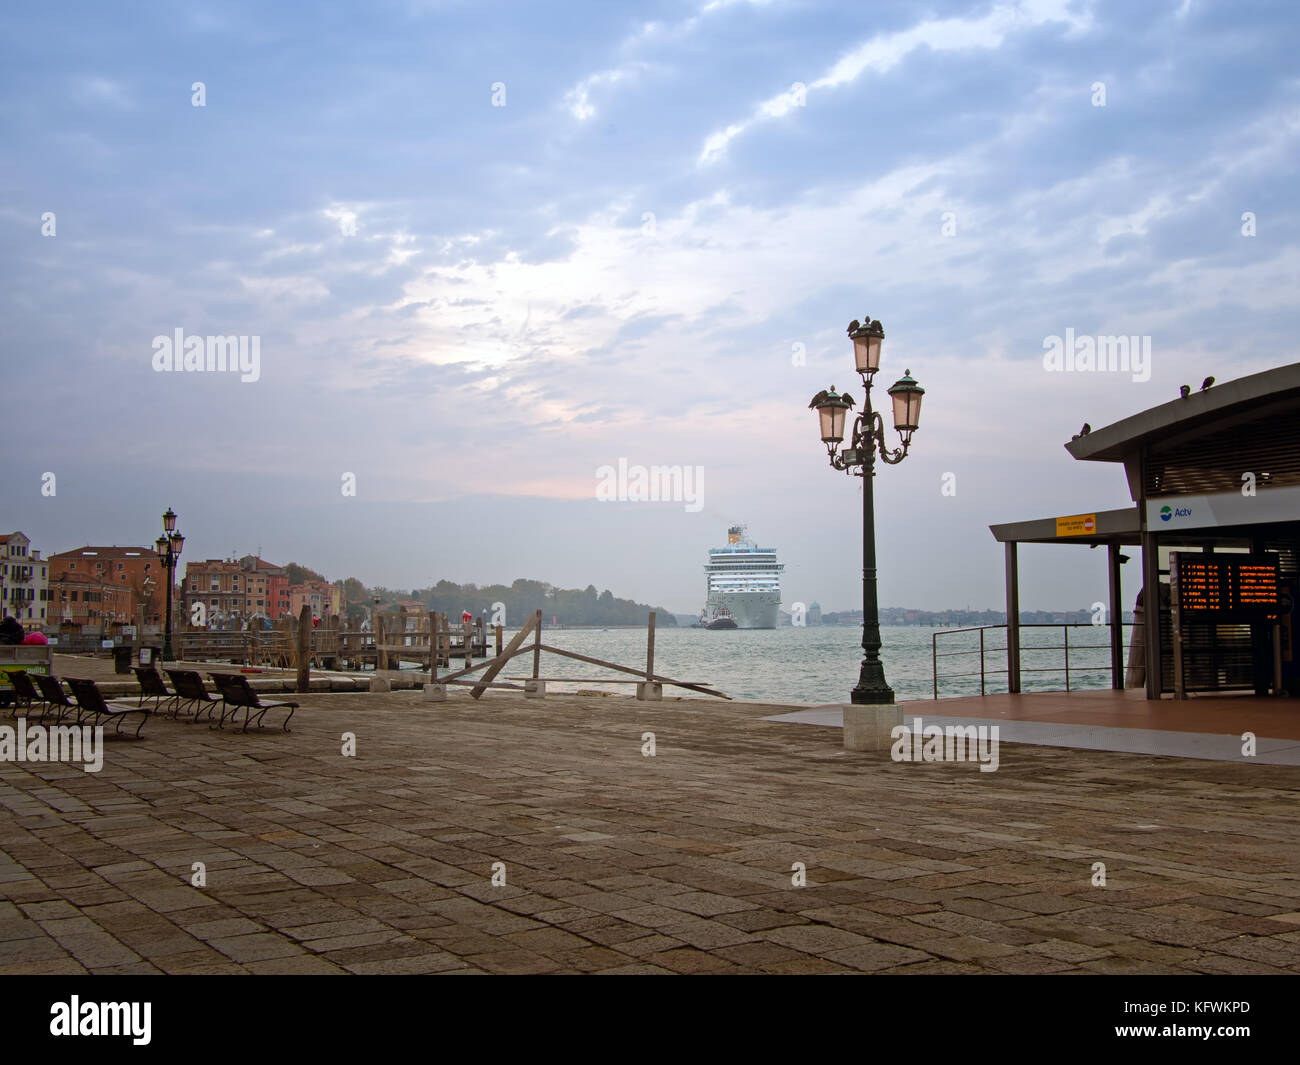 Cruise ship entering Venice. Early morning tourists arrival. - Stock Image